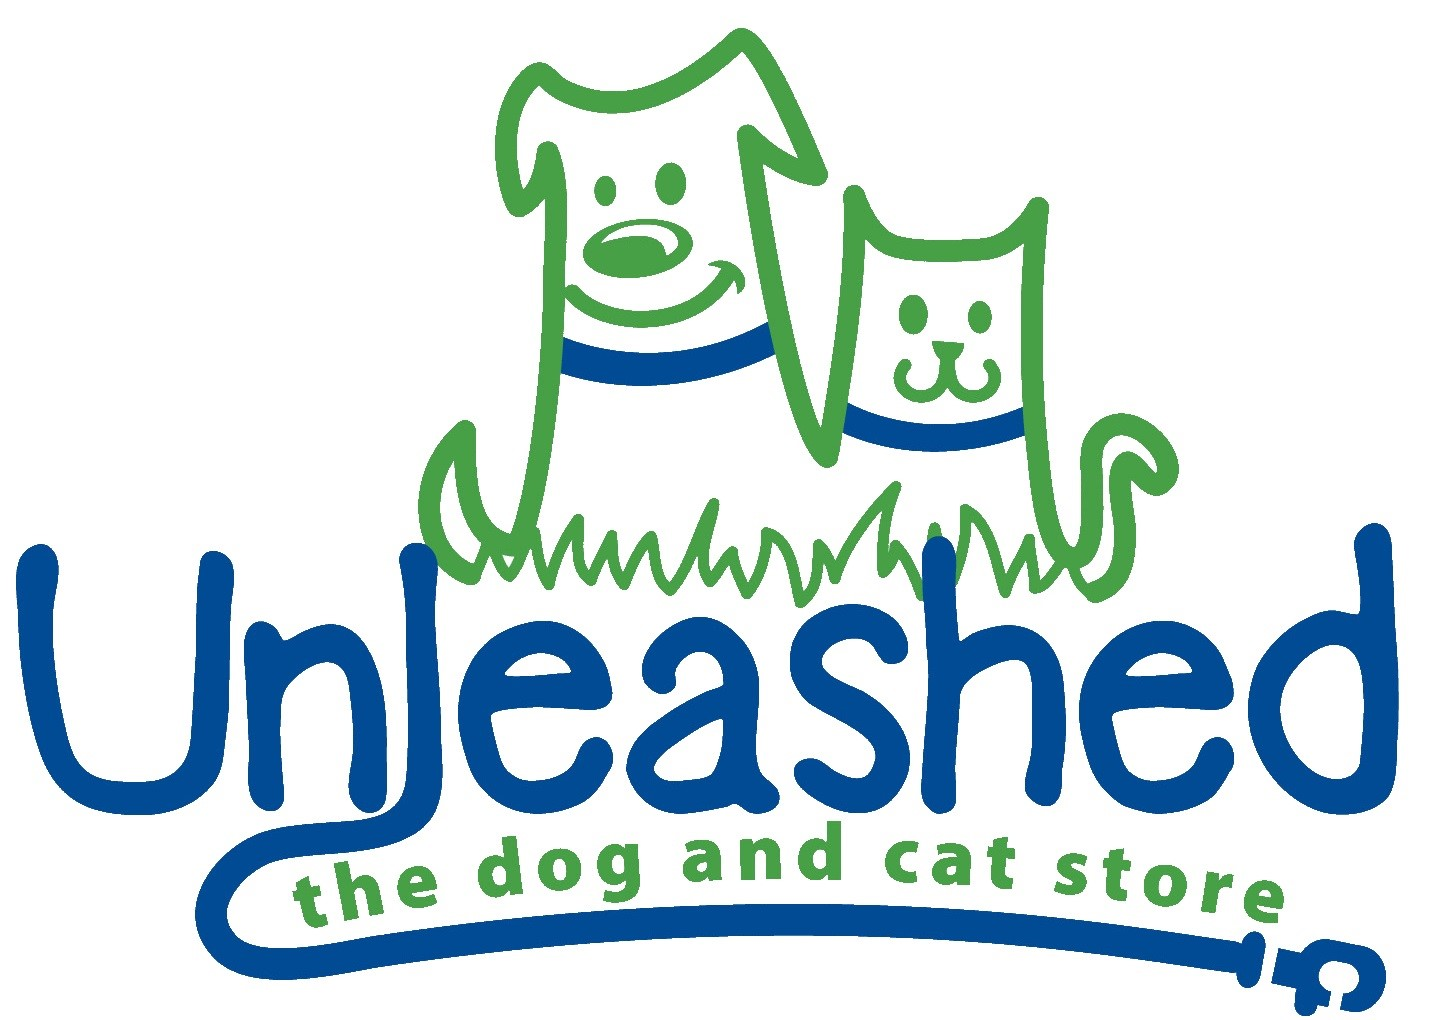 Sponsor Unleashed: The Dog & Cat Store